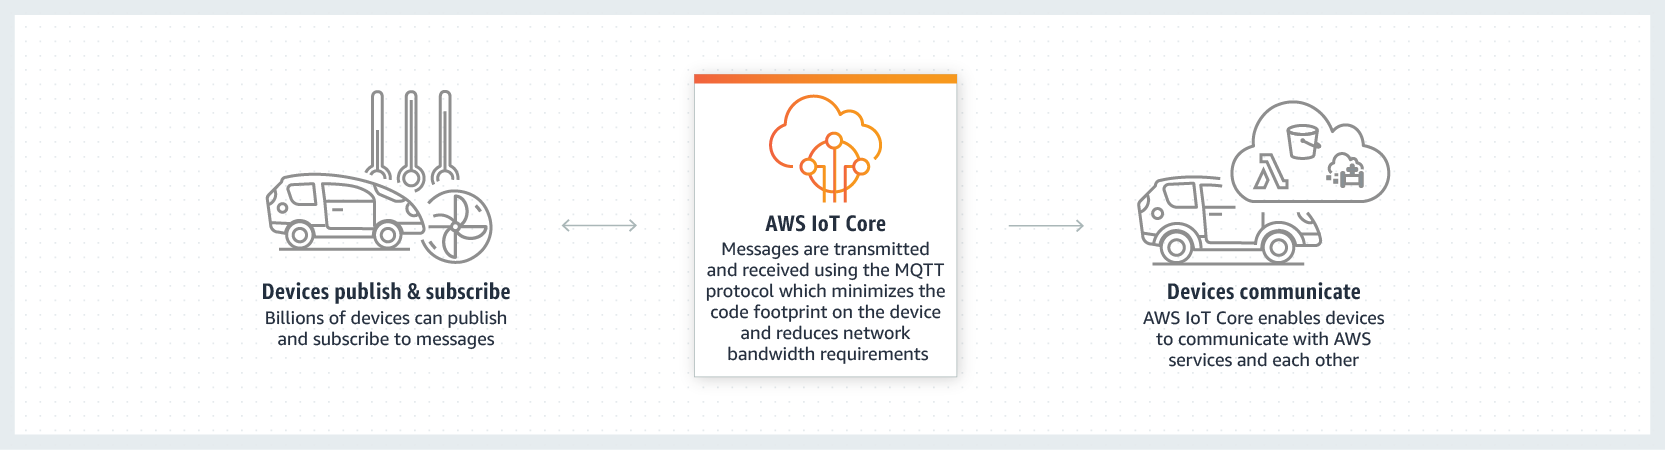 EMnify Connectivity integration into AWS IoT Core